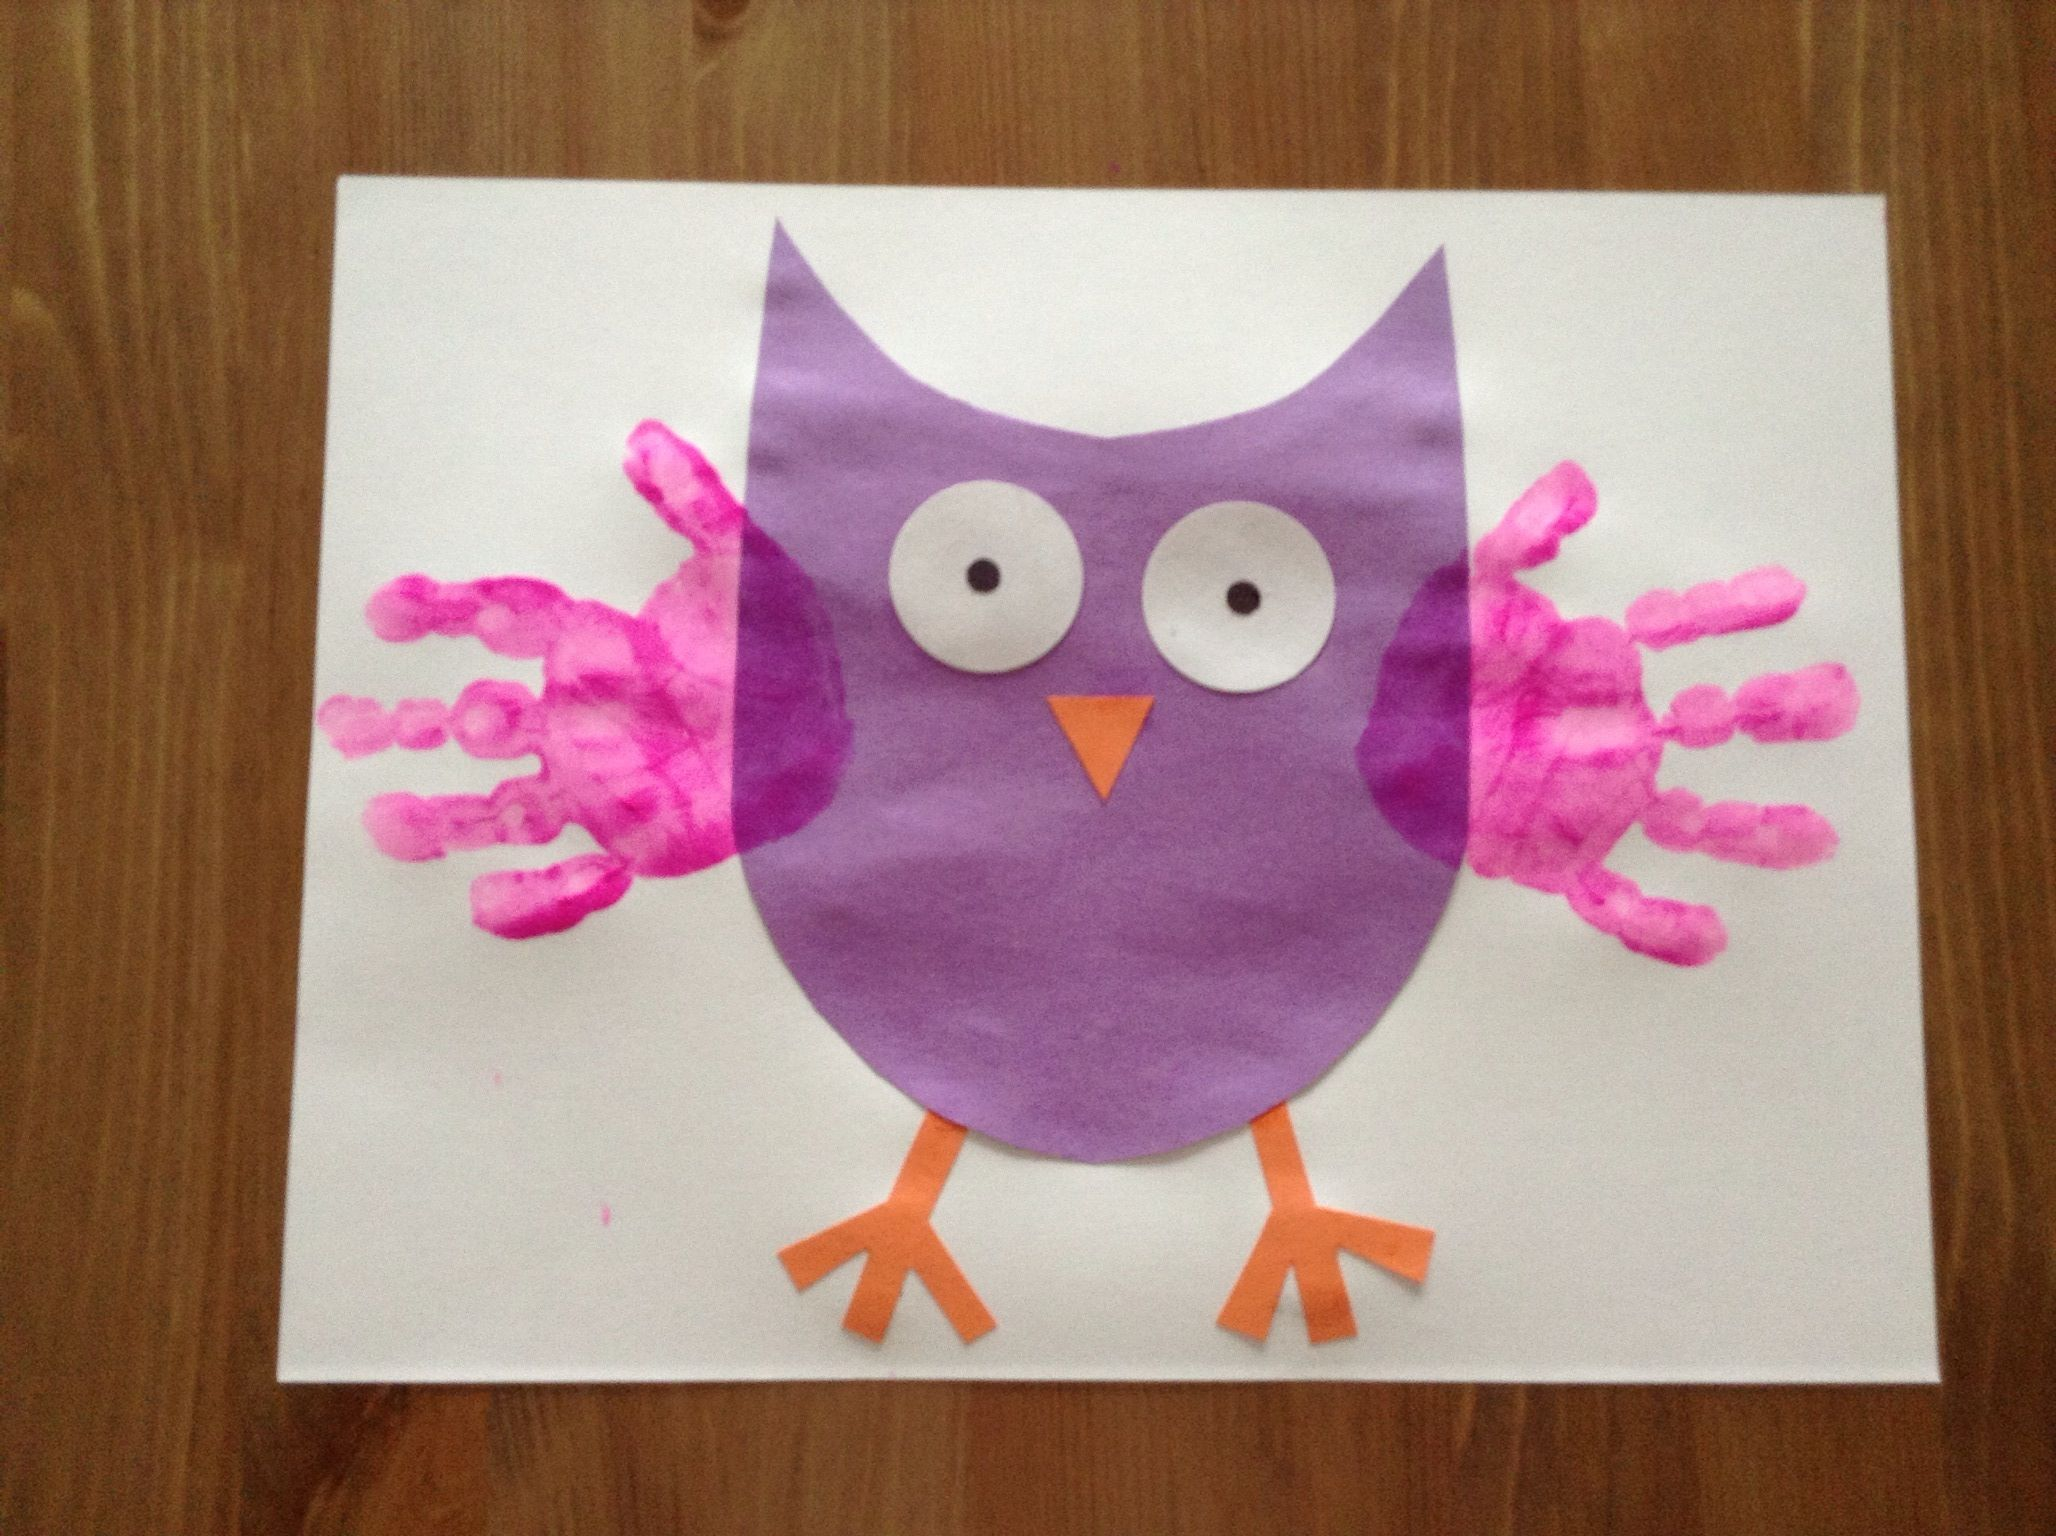 O is for Owl Craft - April 7